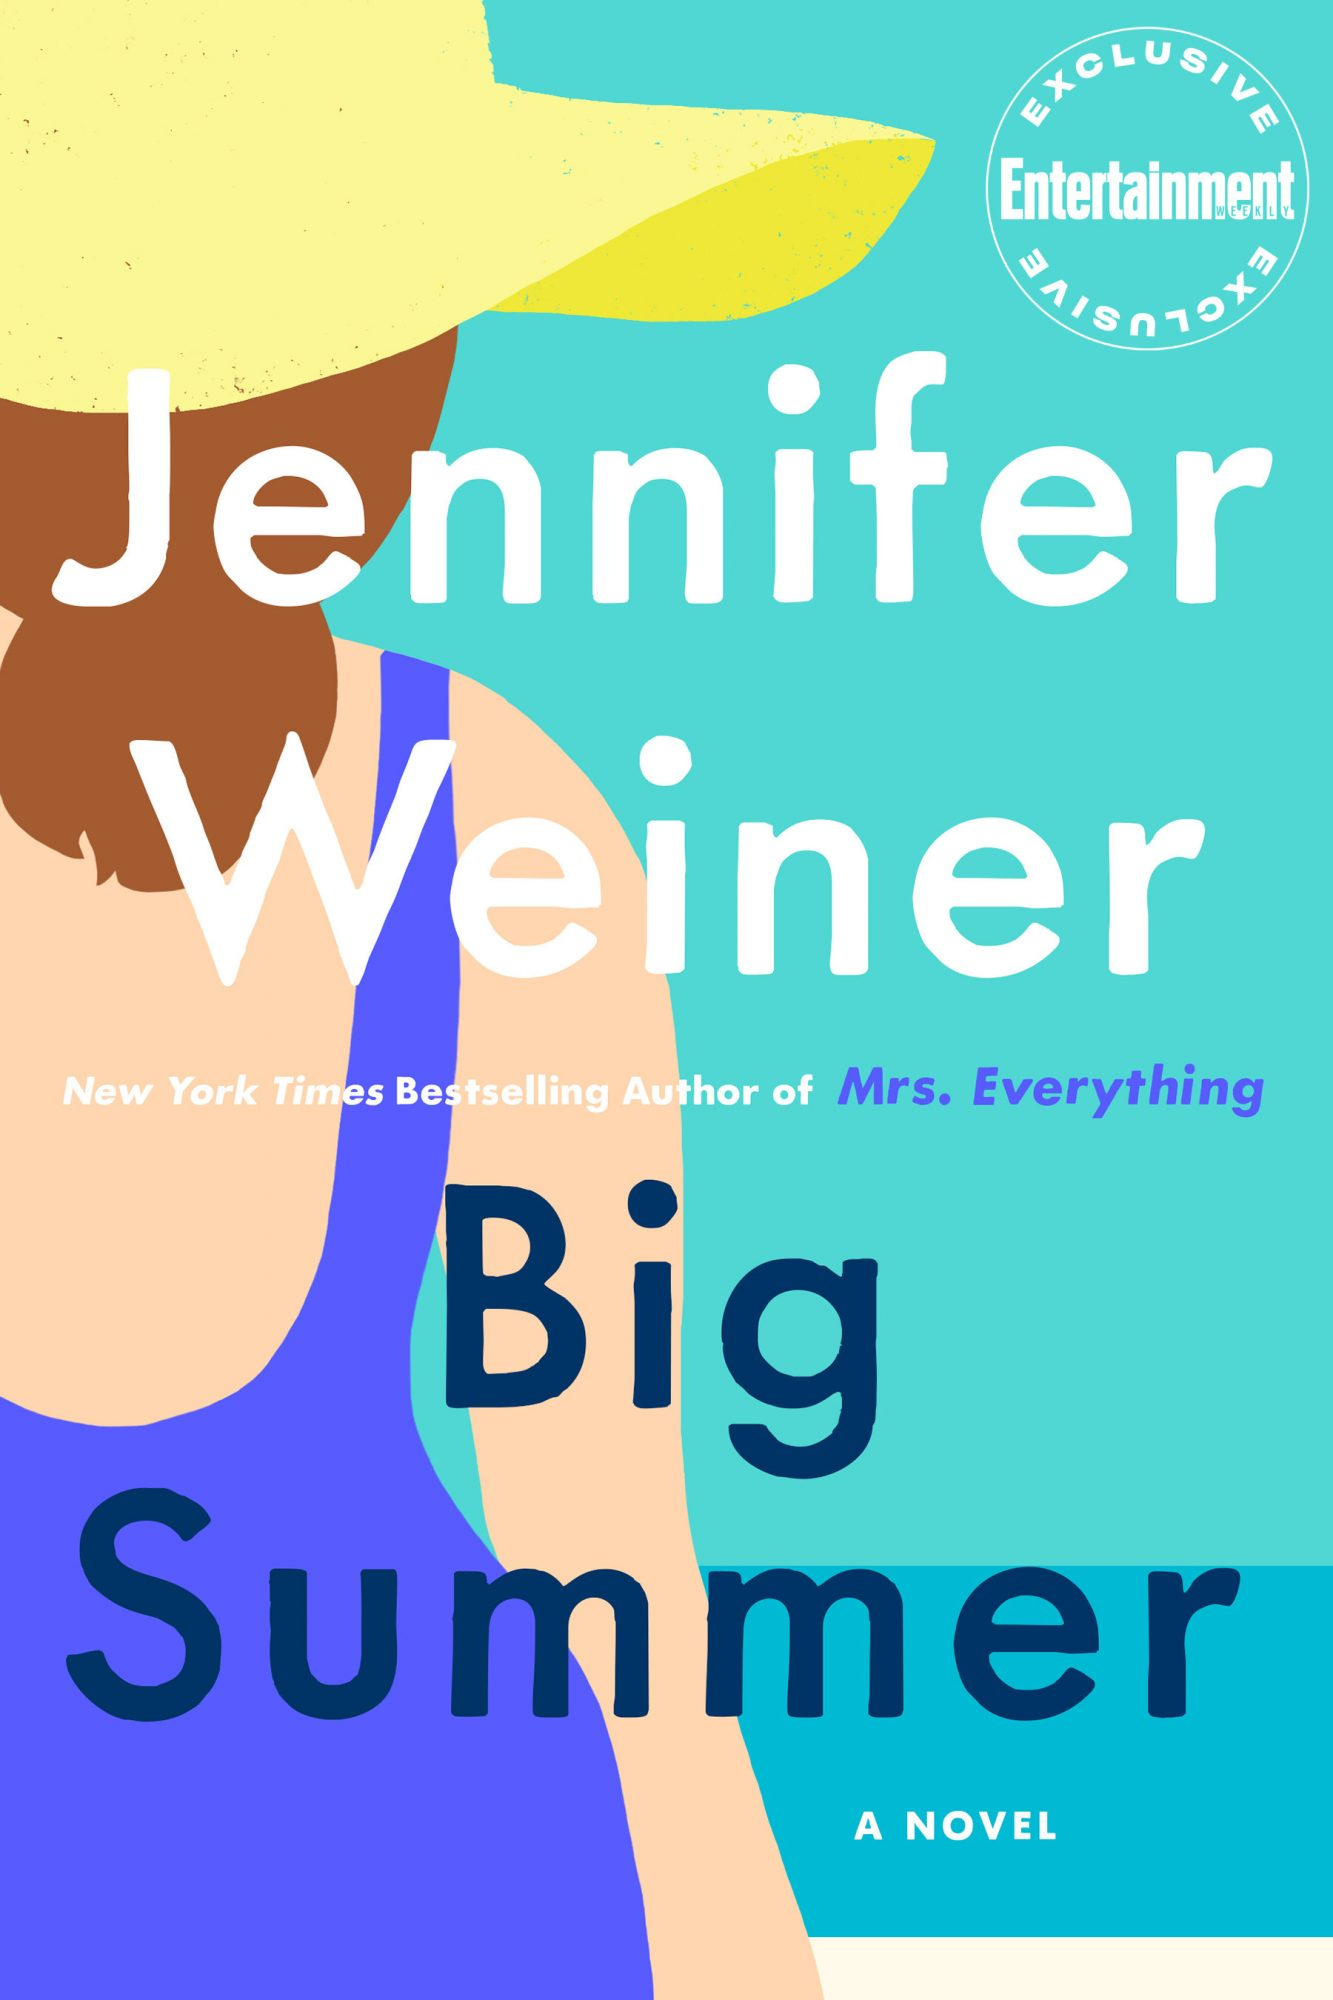 Big Summer, by Jennifer Weiner